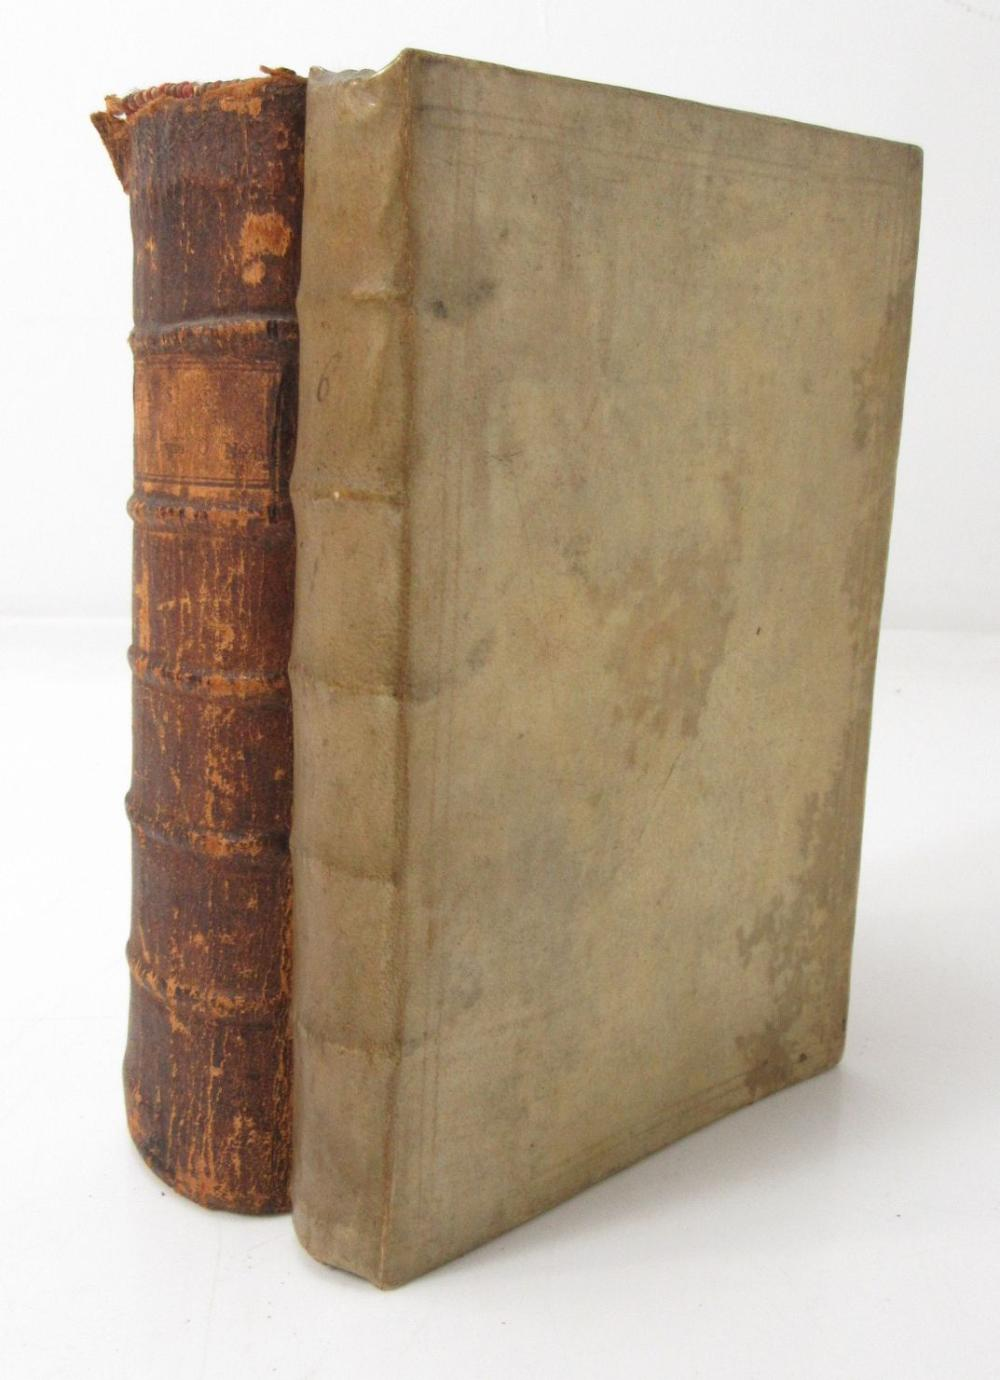 SERMONS, CHIEFLY RELATING TO THE 1745 RISING INCLUDING ROBERTS, SAMUEL